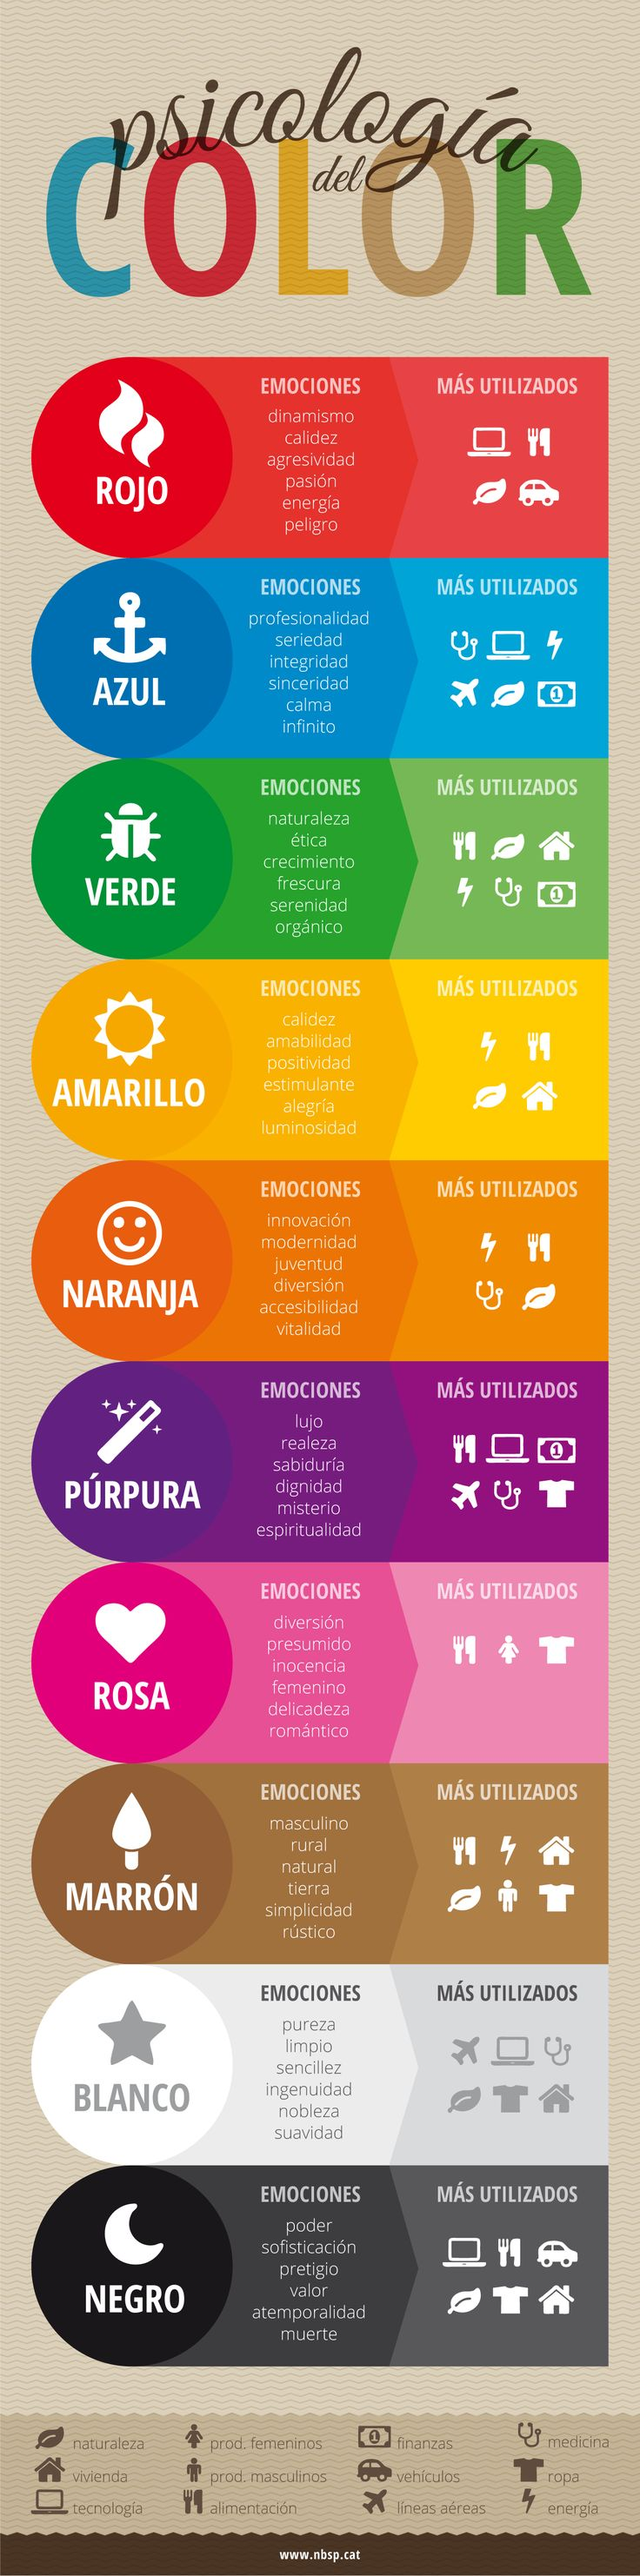 Psicología de color #infografia #infographic #design #marketing | TICs y Formación en WordPress.com Yes.